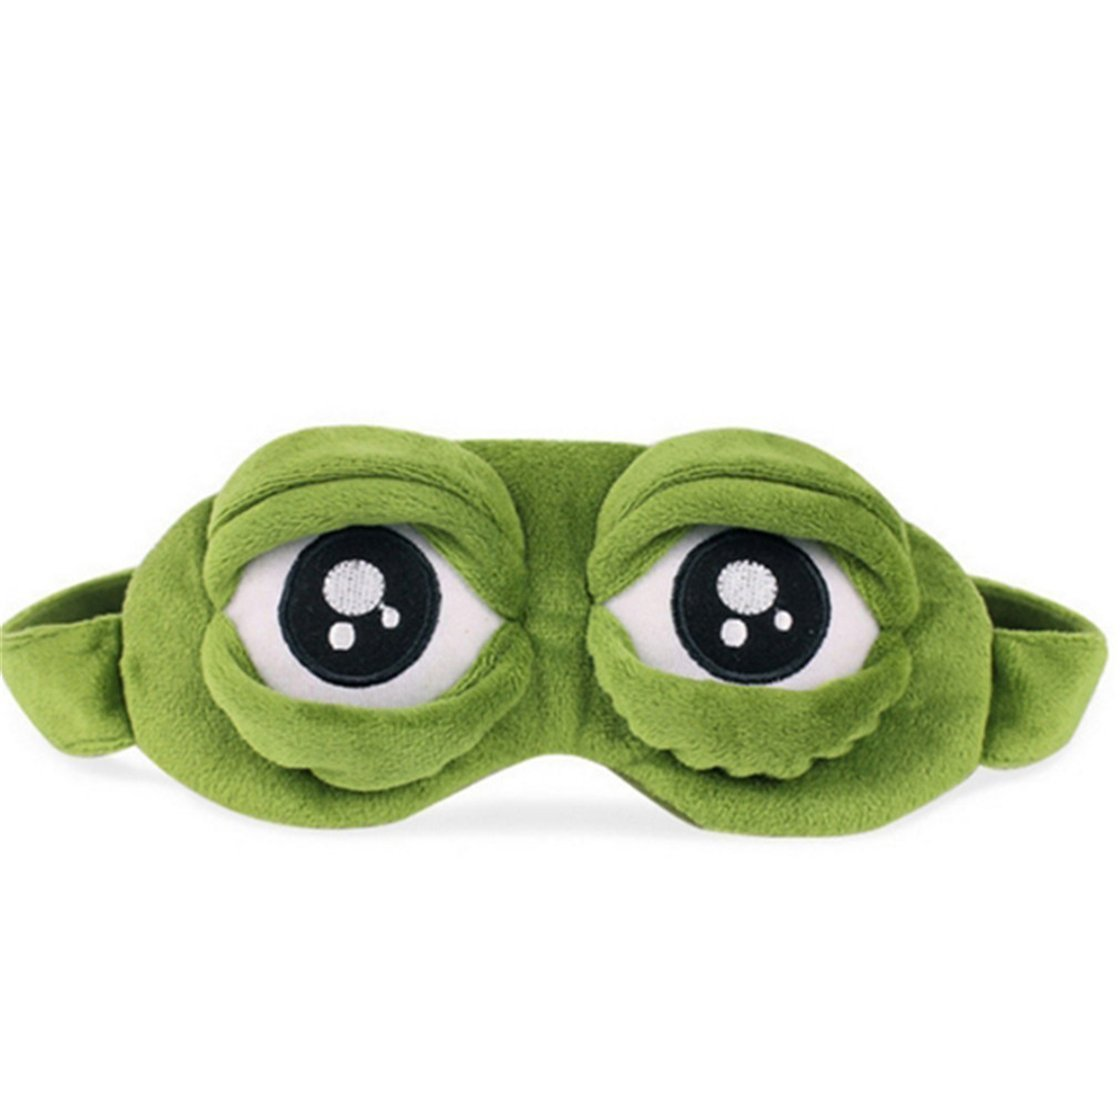 Fanned Creative Cartoon Frog Eye Mask Fluff Cute Sleep Eyeshade-Green Cartoon Sad Frog 3D Eye Mask Cover Sleeping Rest Travel Anime Funny Gift